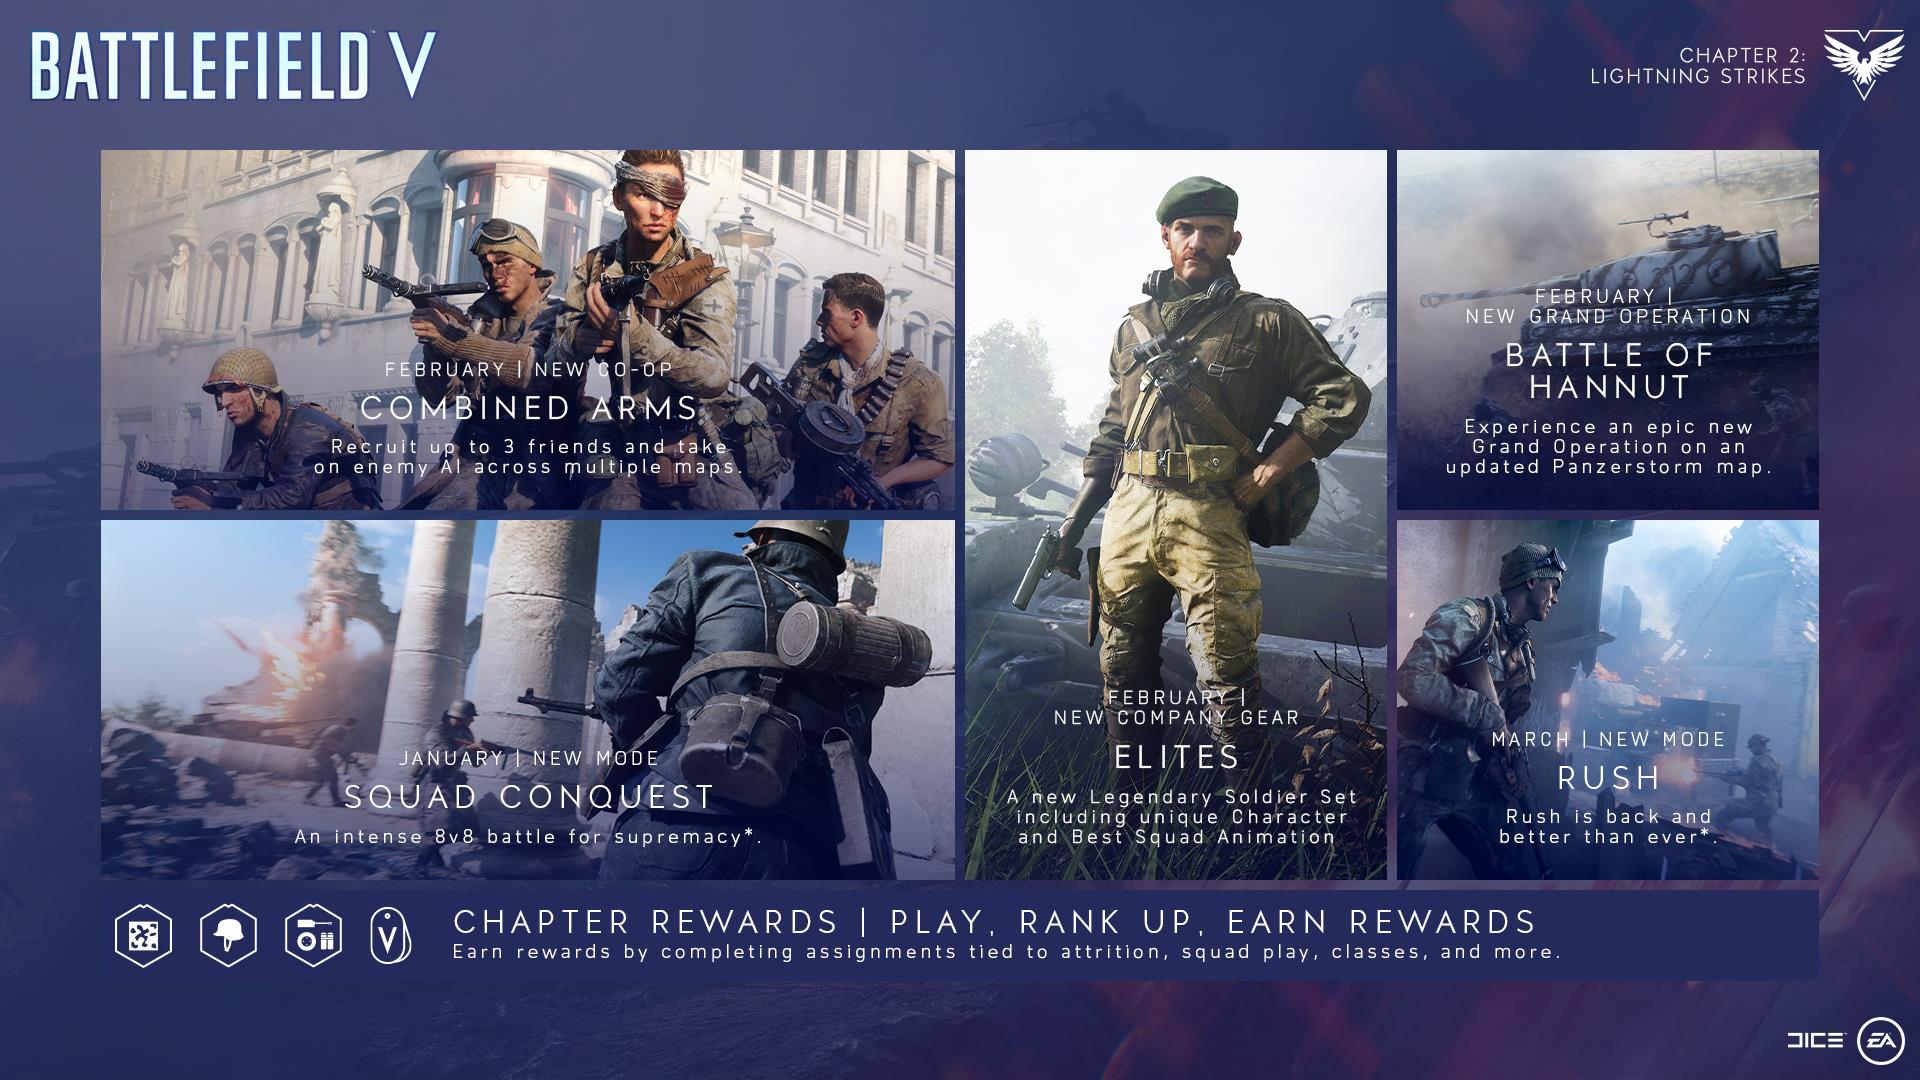 Everything worth caring about in today's Battlefield 5 Lightning